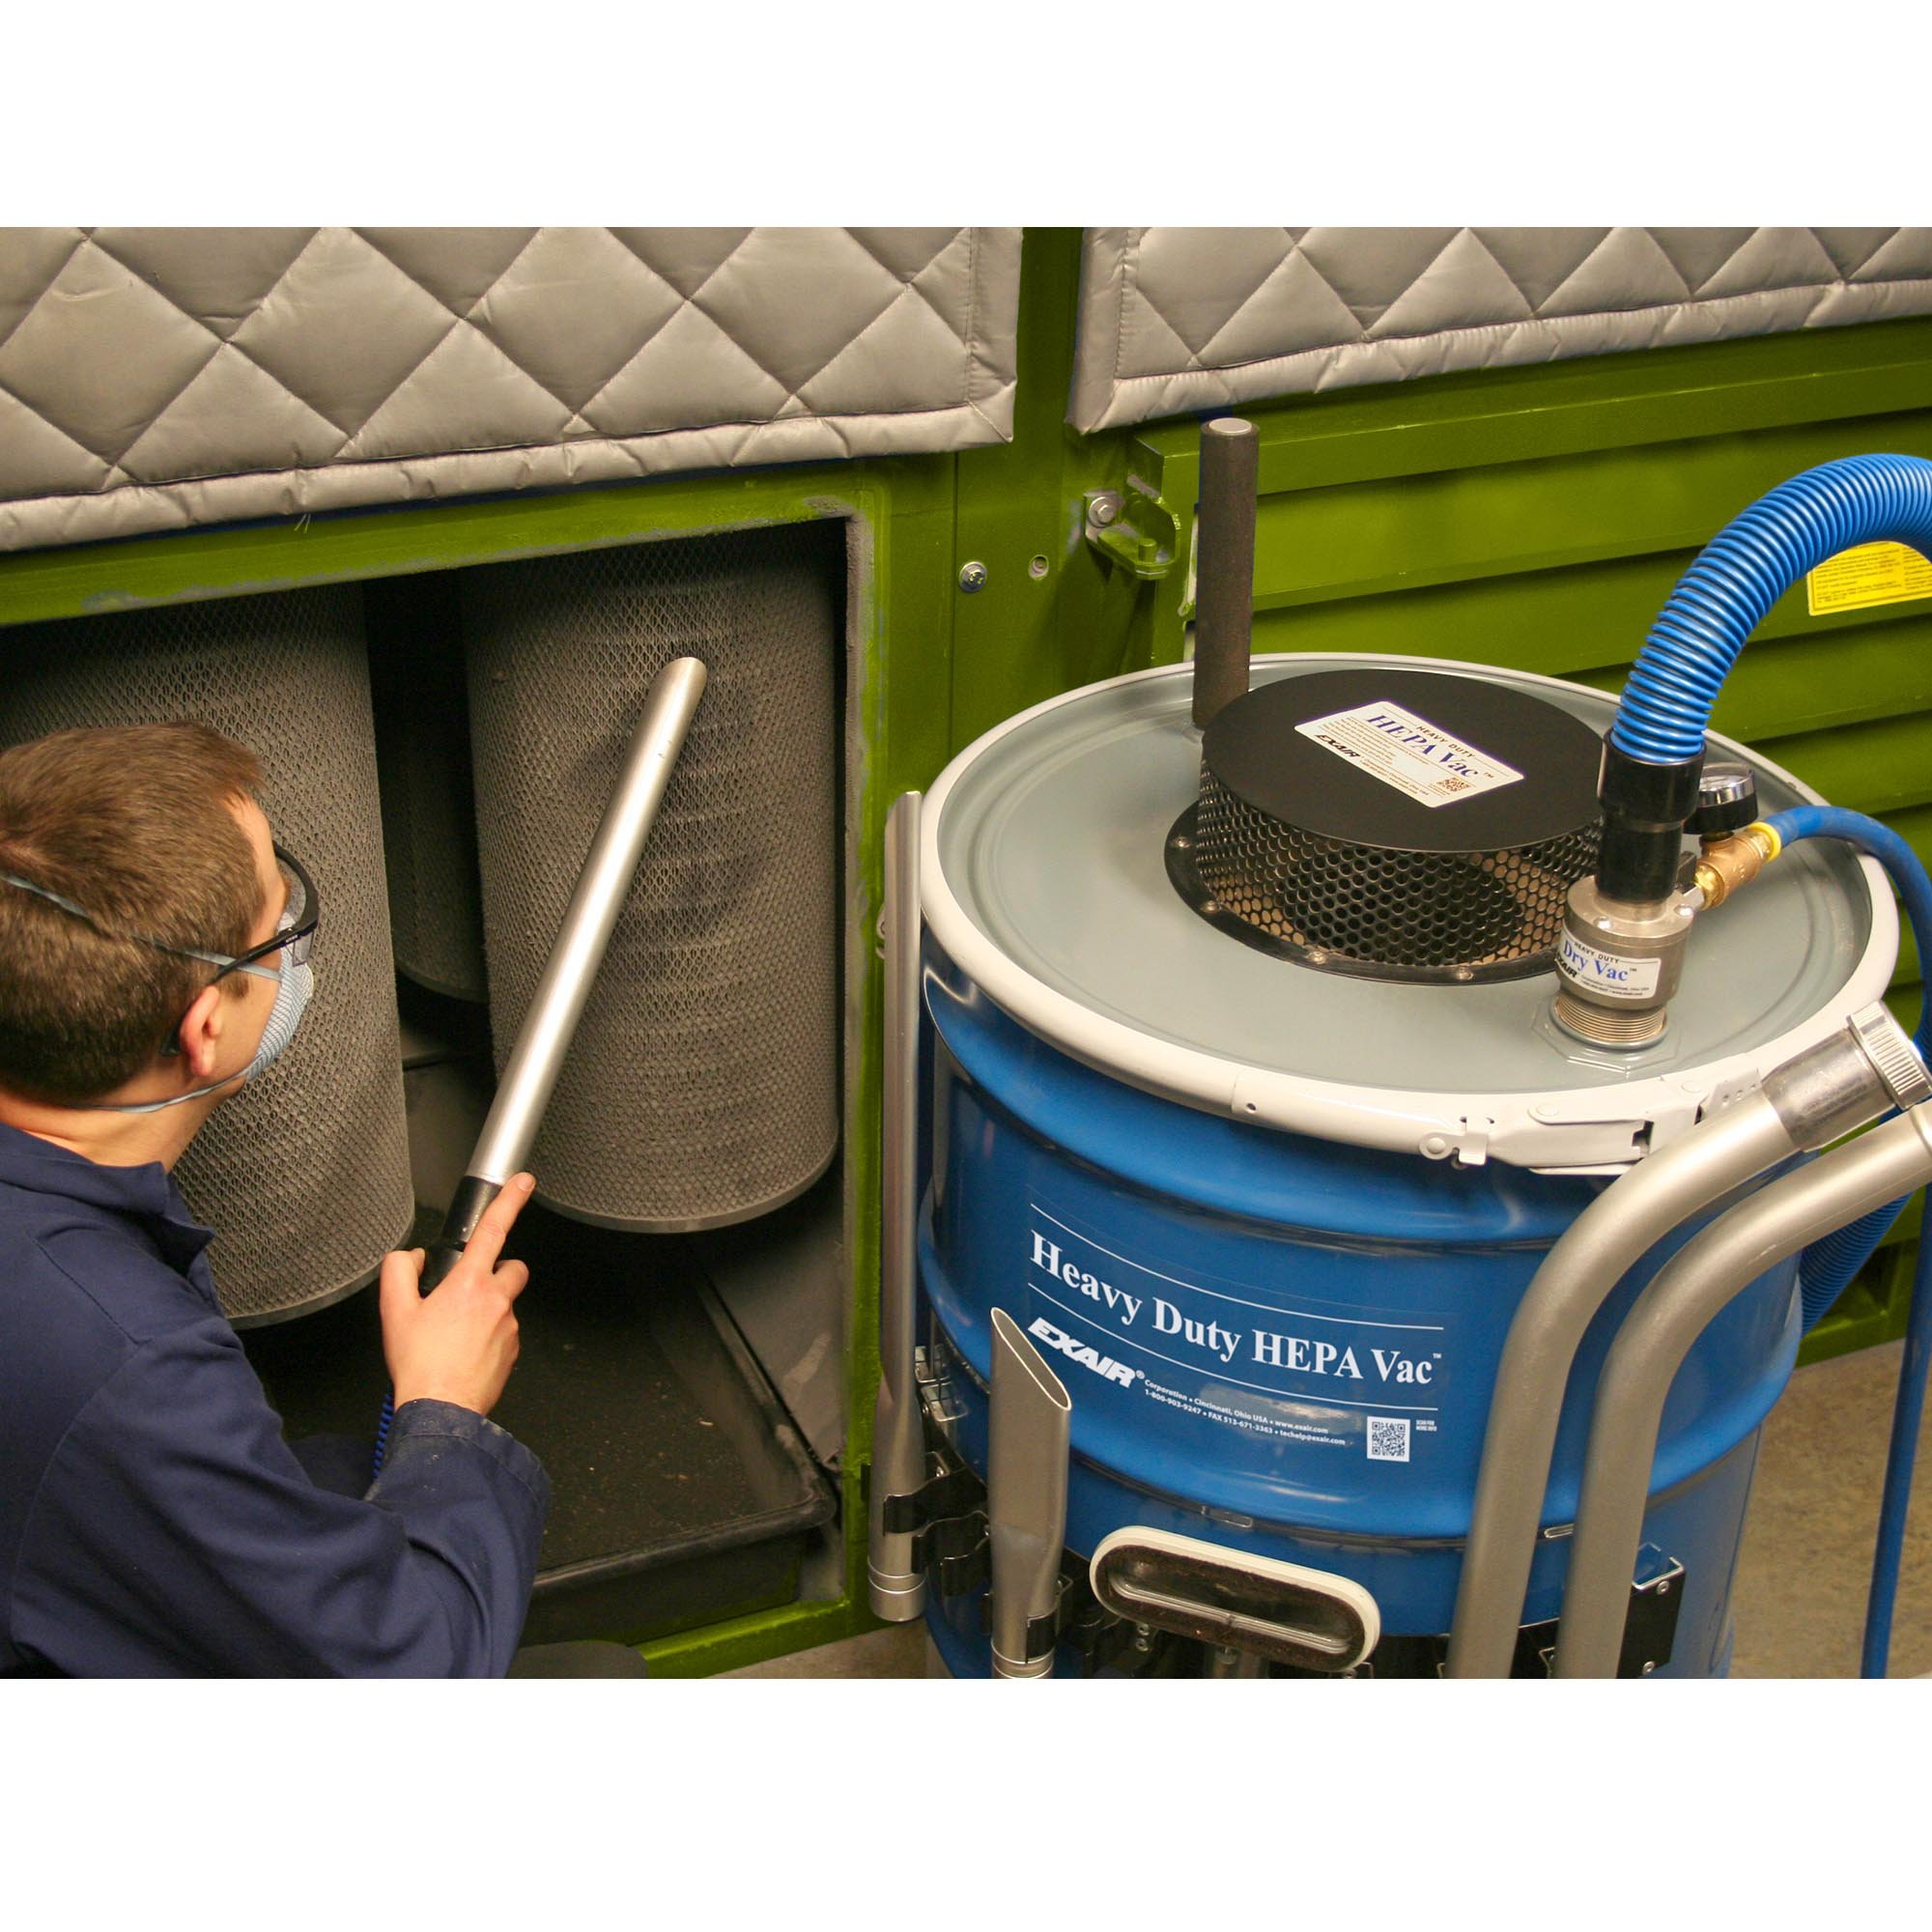 Heavy Duty HEPA Vacuum For 110 Gallon Drums.